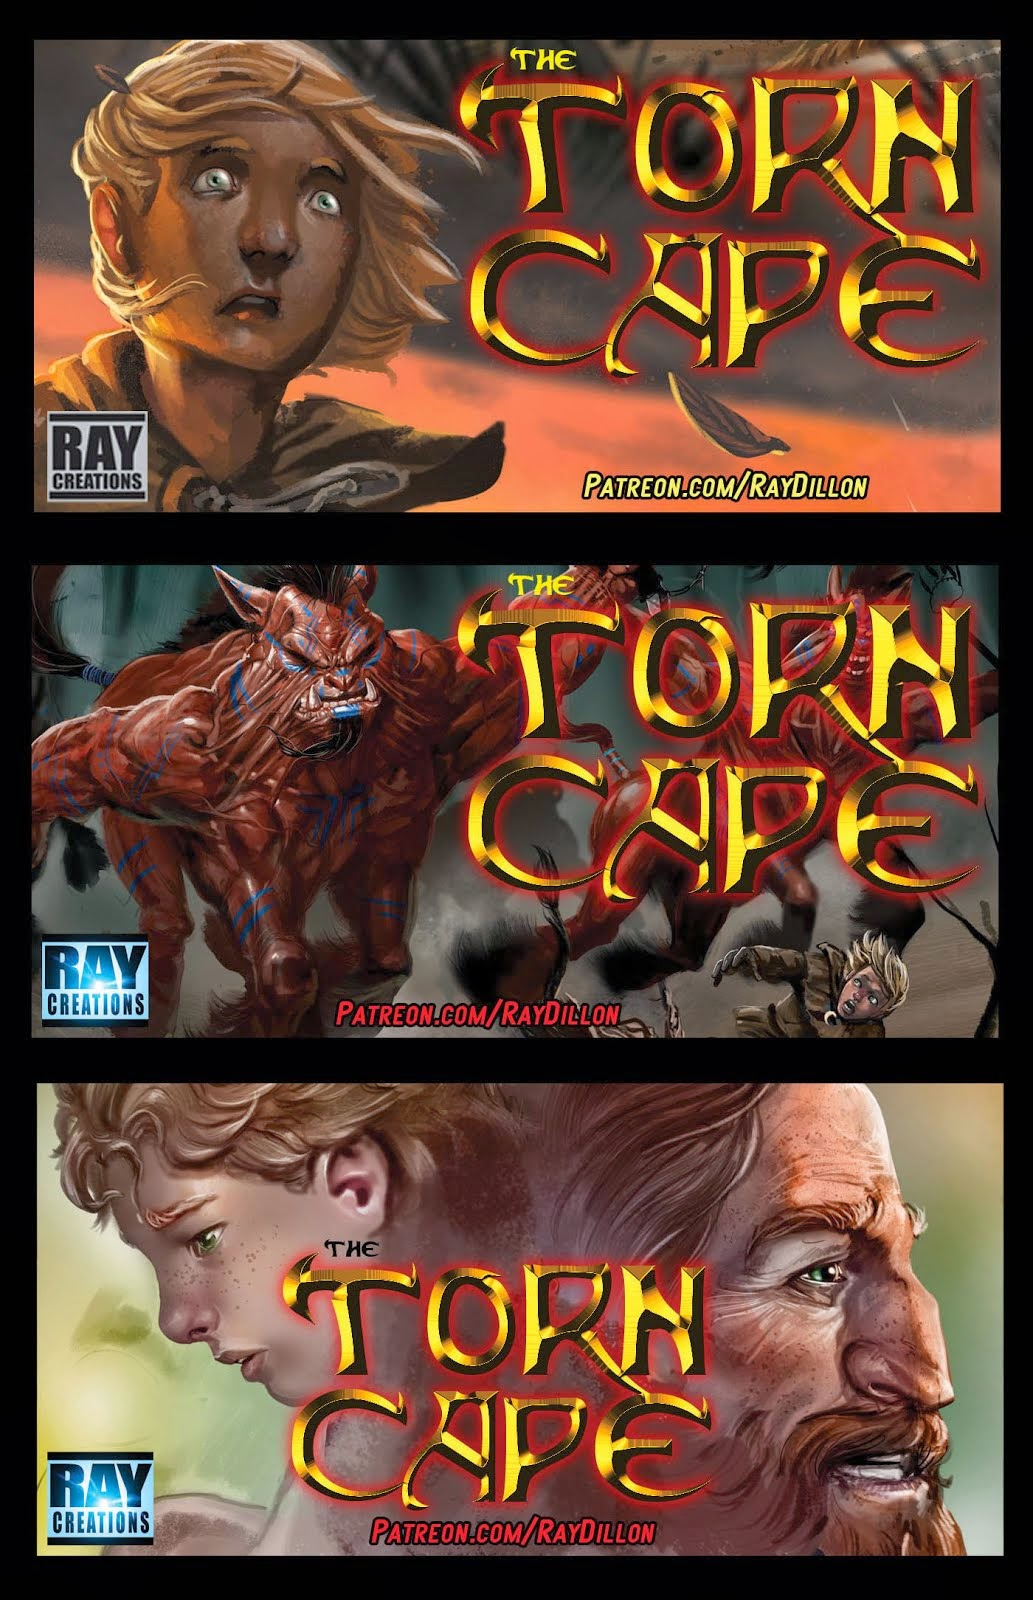 THE TORN CAPE